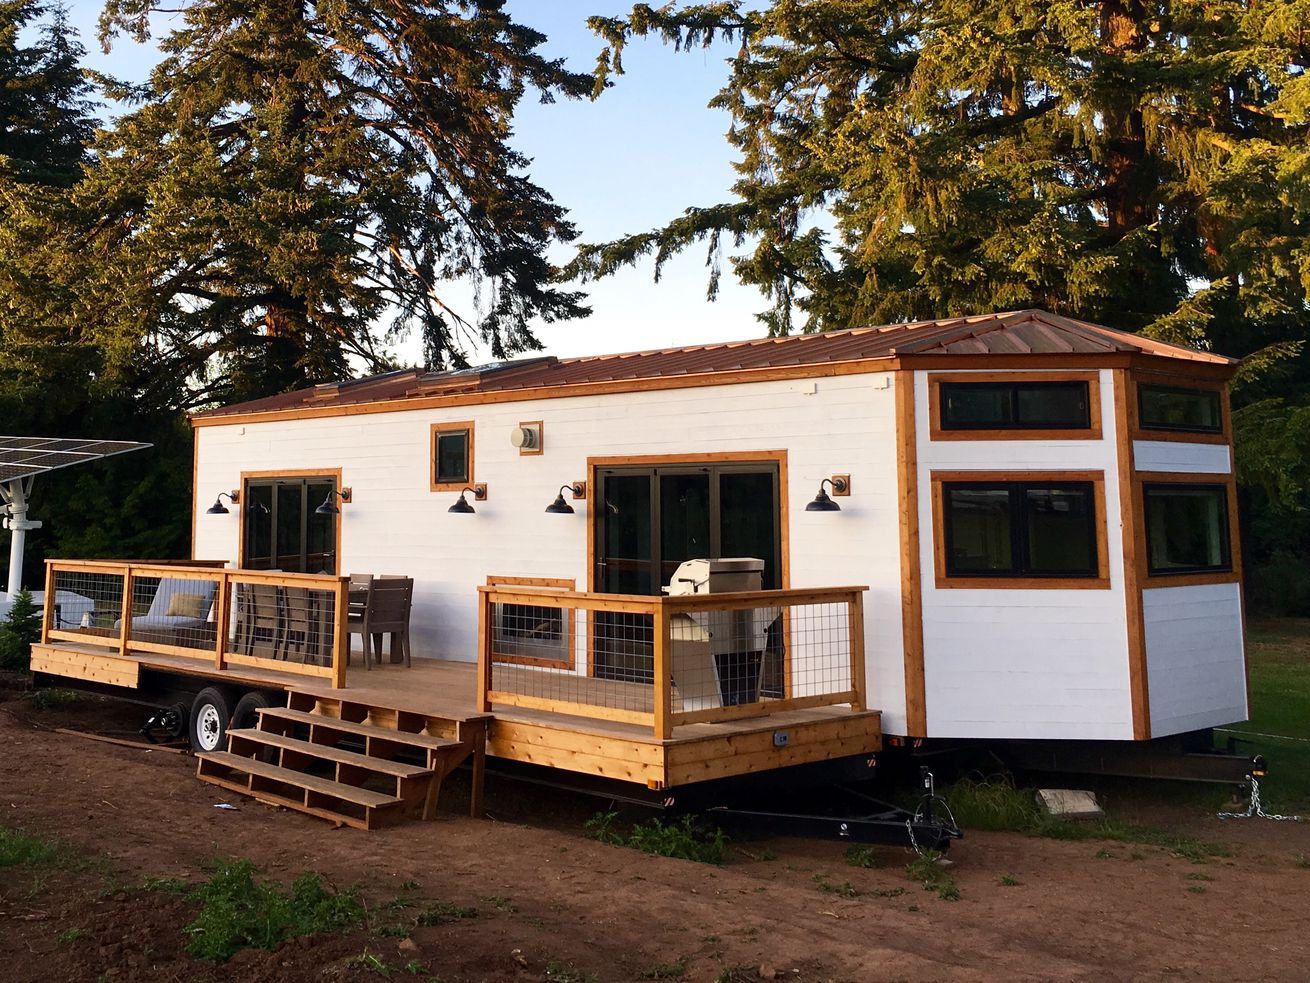 400-square-foot Hawaiian tiny house brings the outdoors in